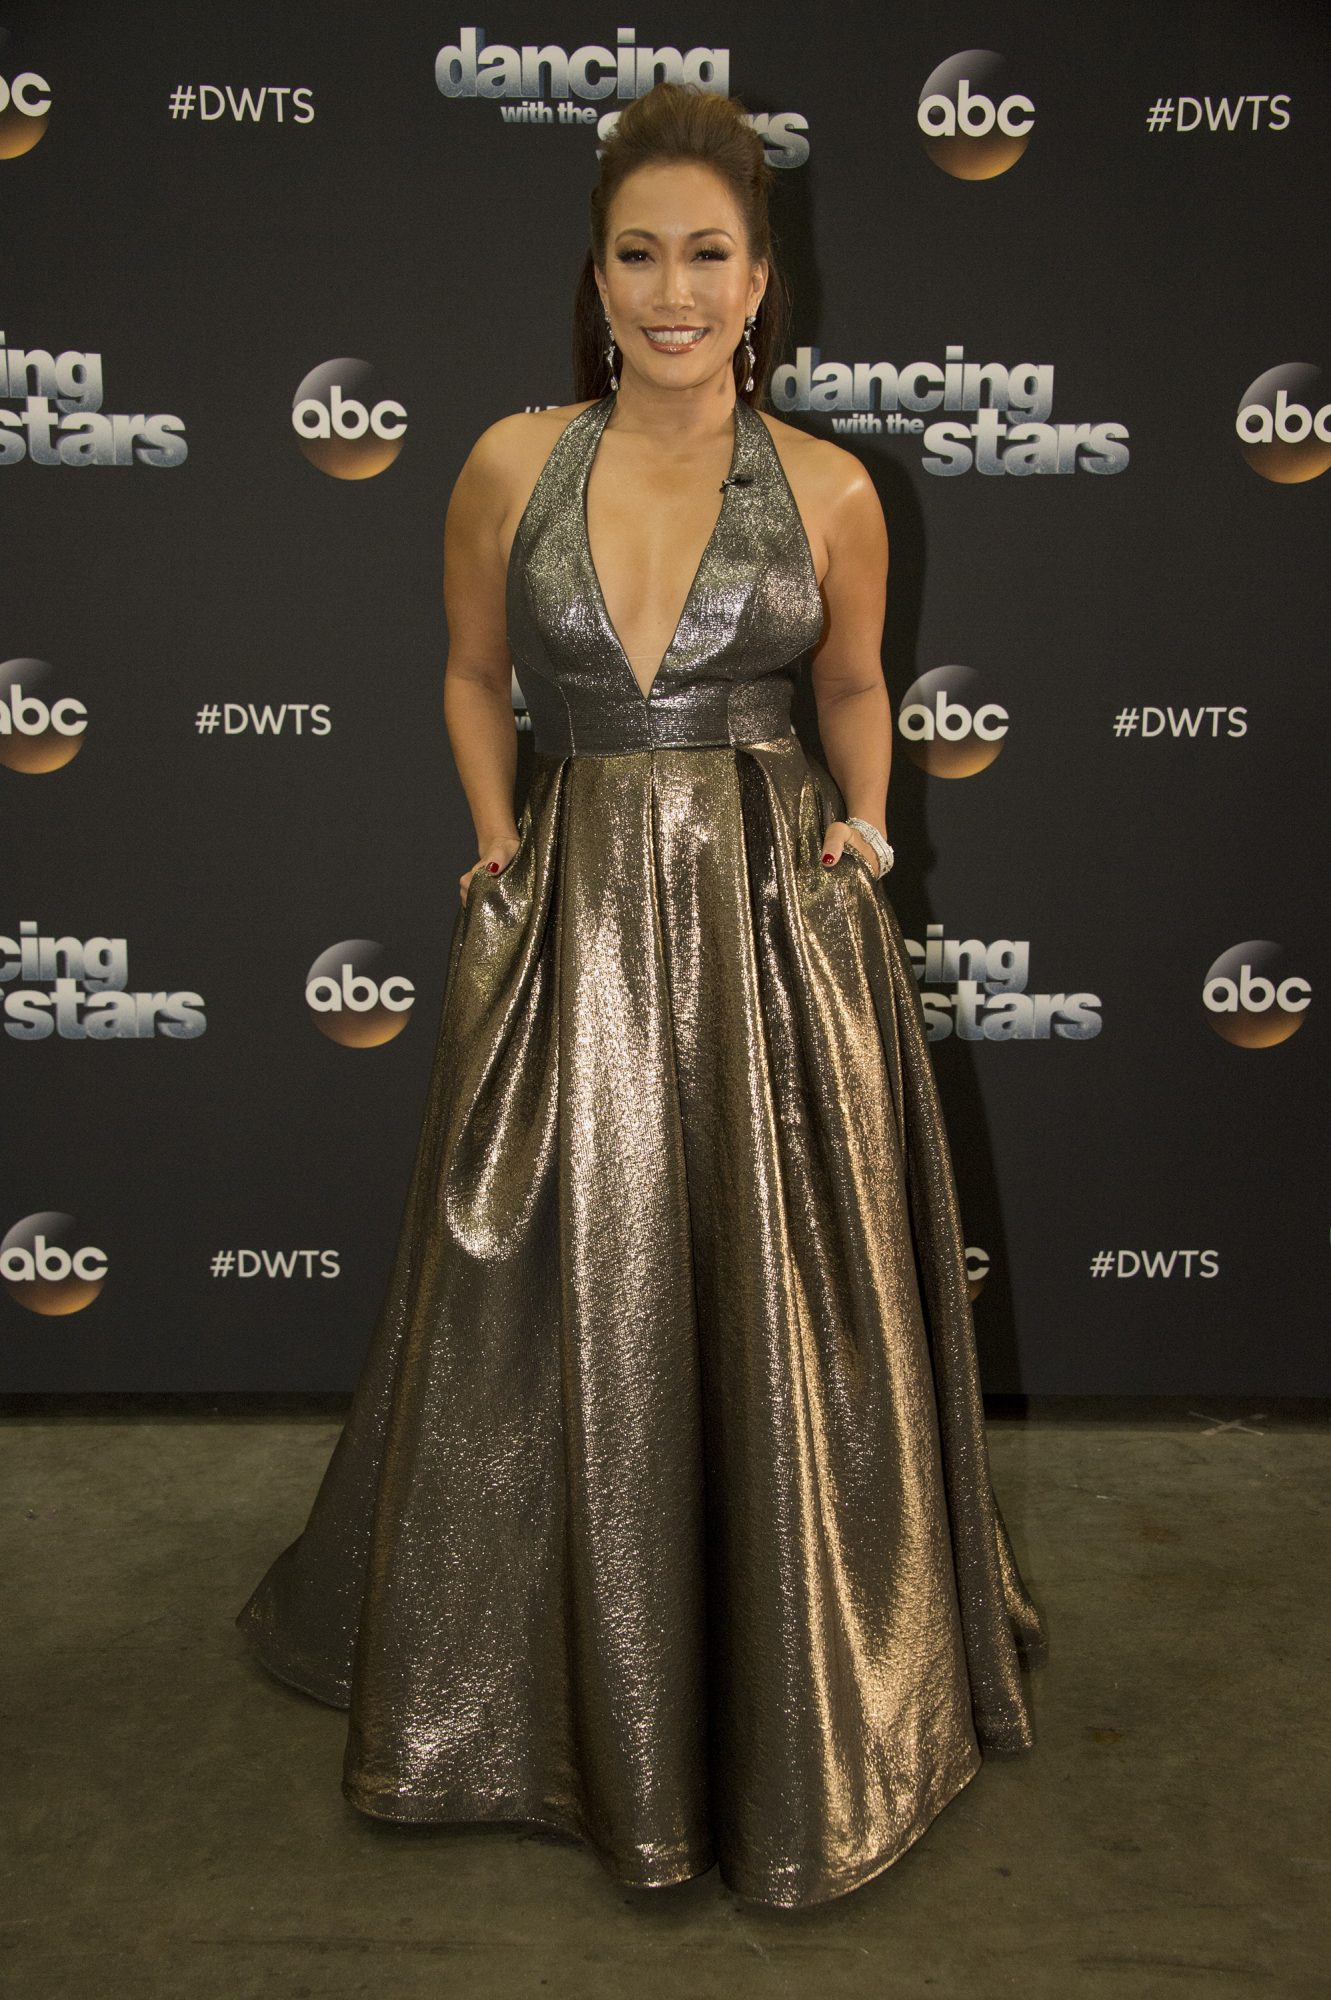 carrie-ann-inaba-dancing-stars